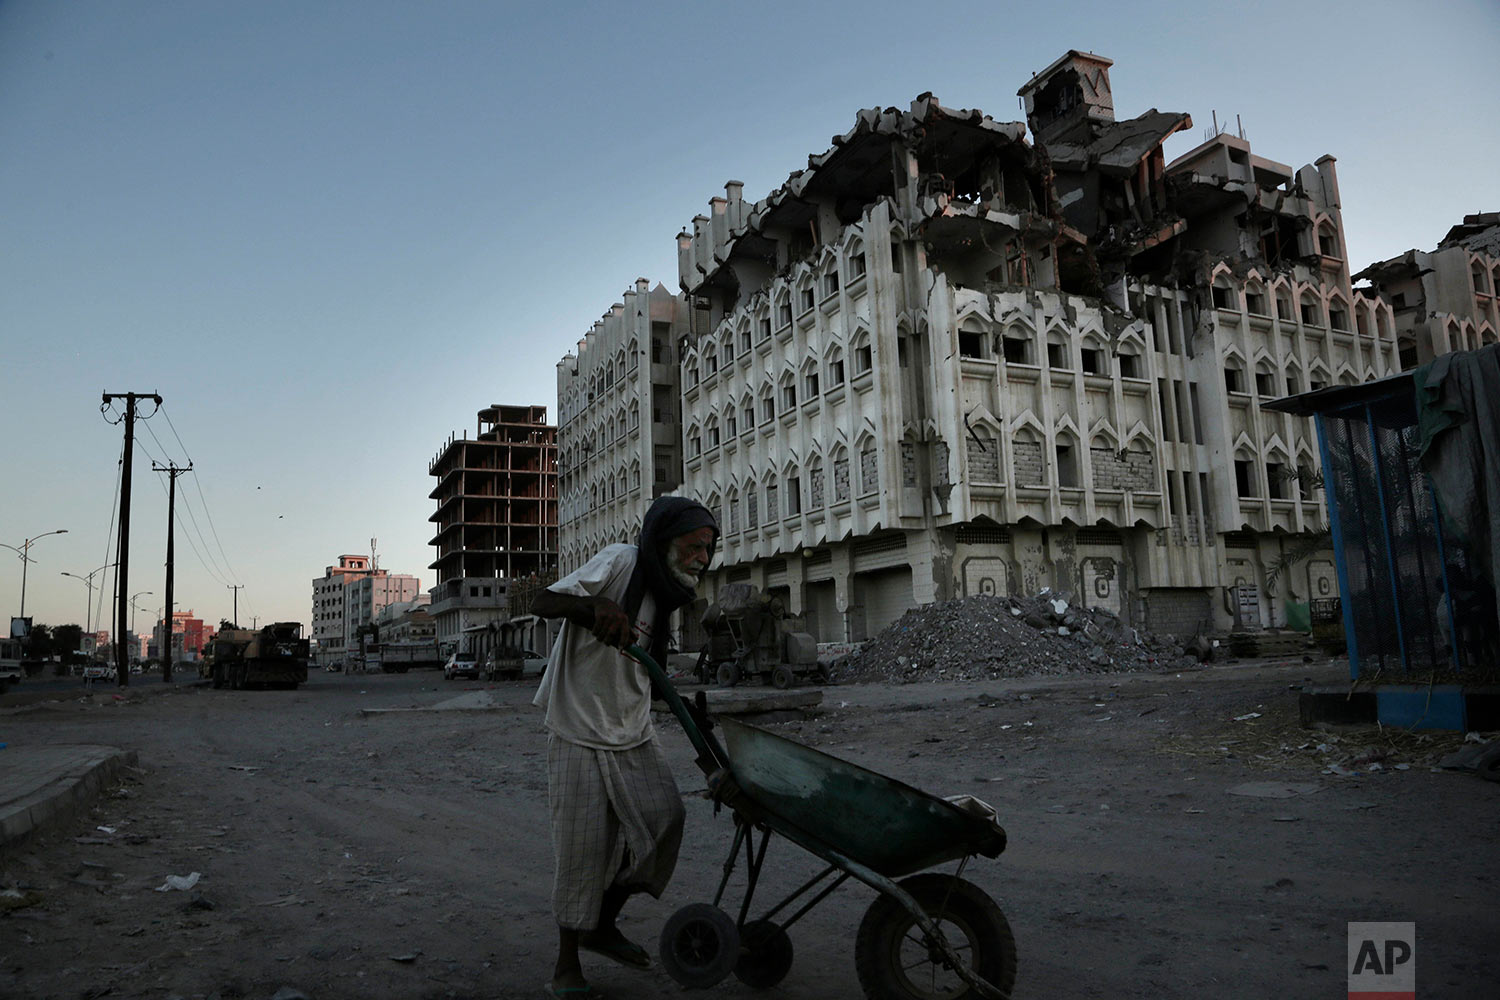 A elderly man walks past a damaged building from the 2015 war in Aden, Yemen. (AP Photo/Nariman El-Mofty)